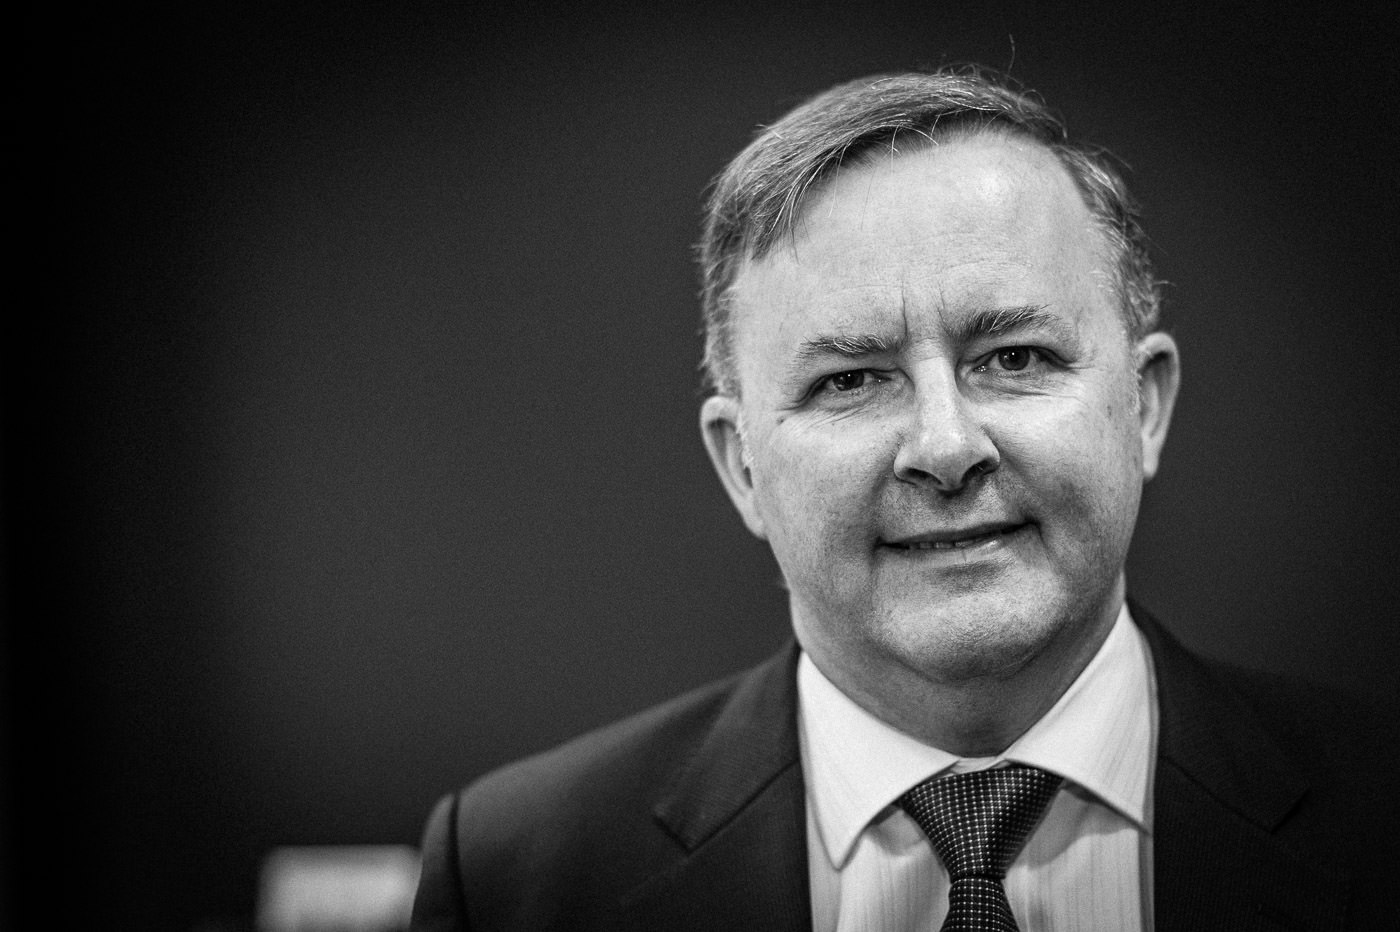 Portrait of The Hon Anthony Albanese MP